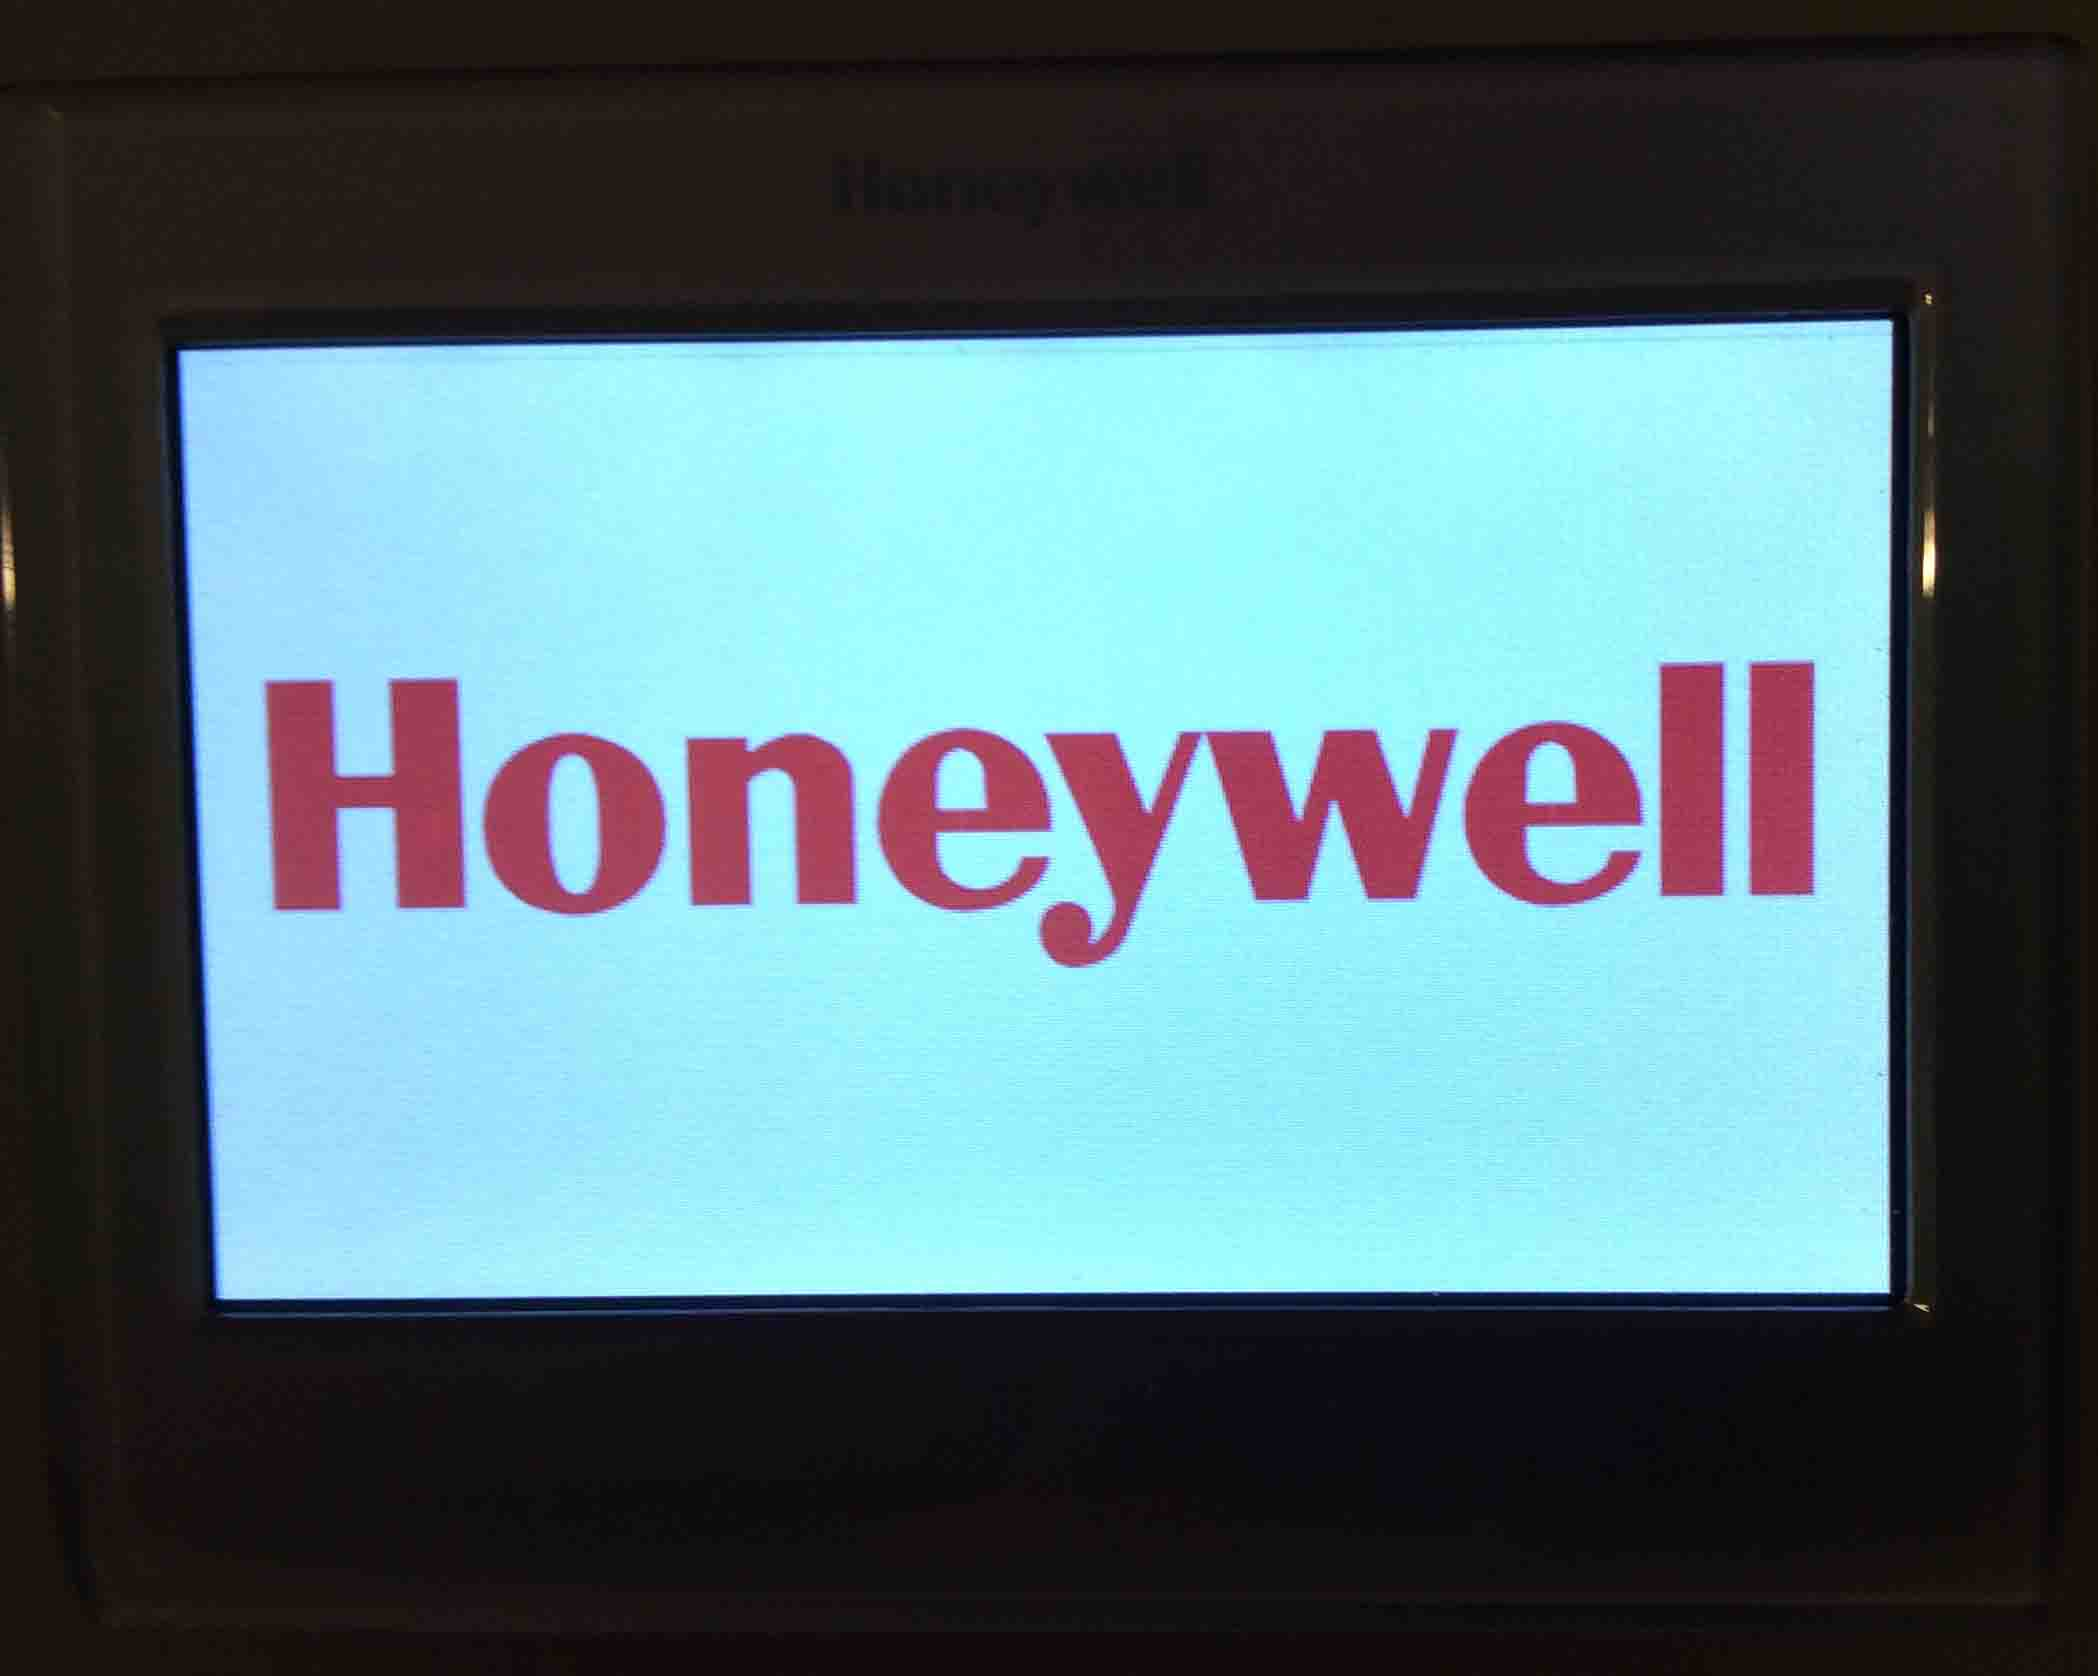 Wiring Diagram For Honeywell Rth 9580 : 37 Wiring Diagram Images ...